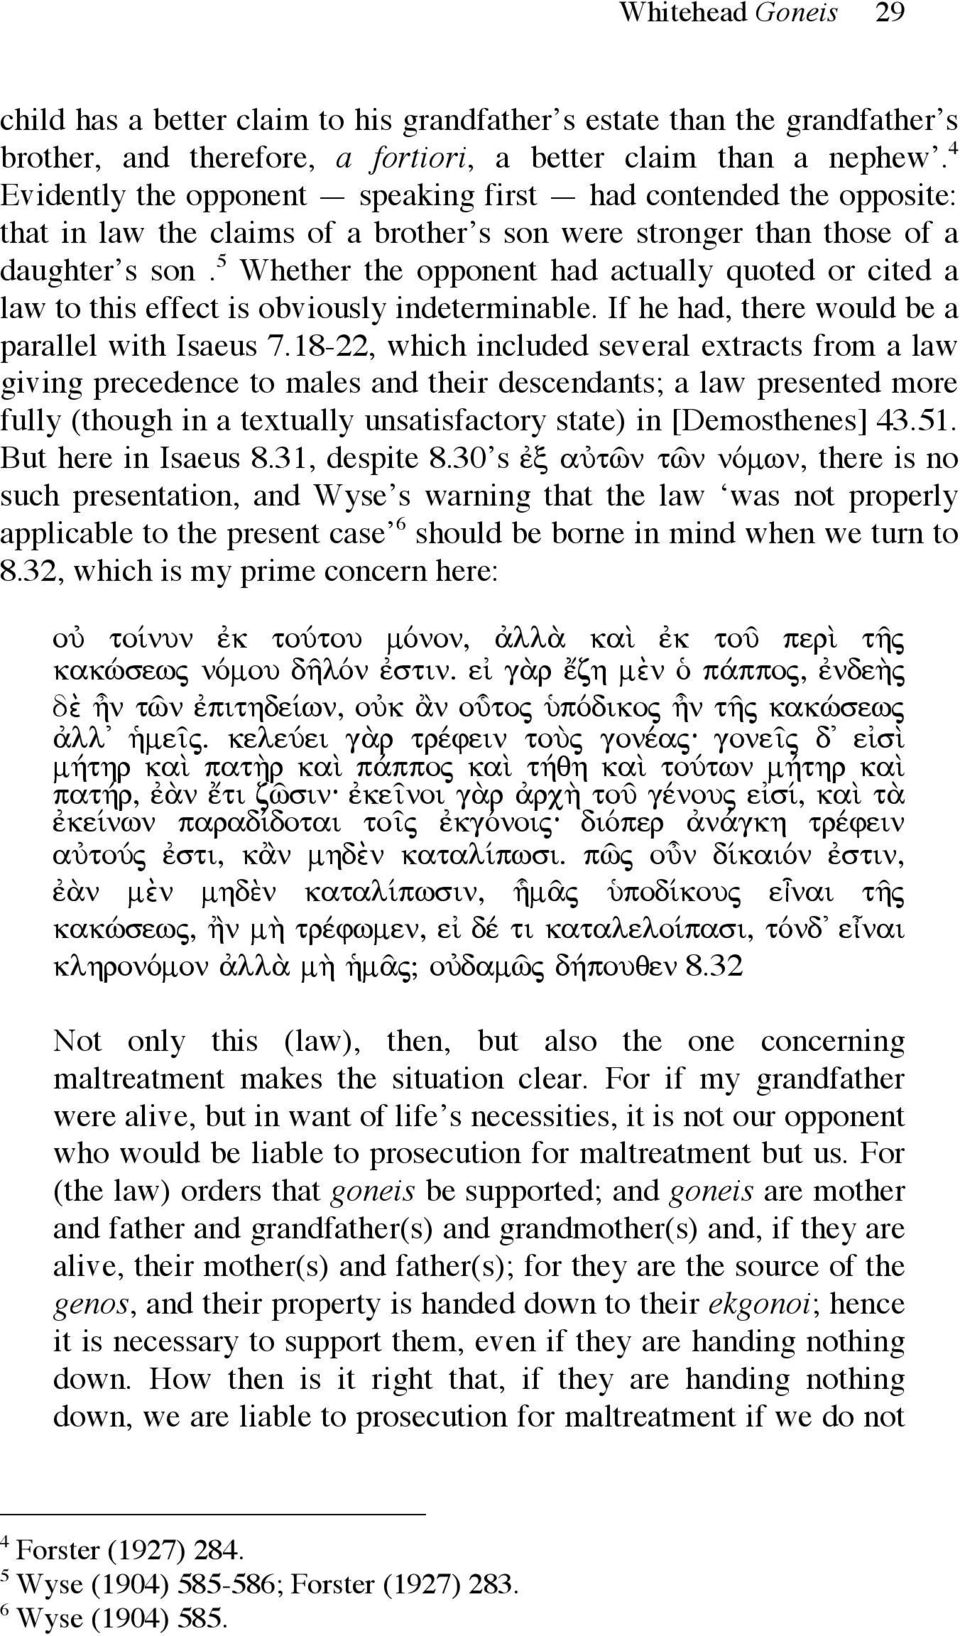 5 Whether the opponent had actually quoted or cited a law to this effect is obviously indeterminable. If he had, there would be a parallel with Isaeus 7.